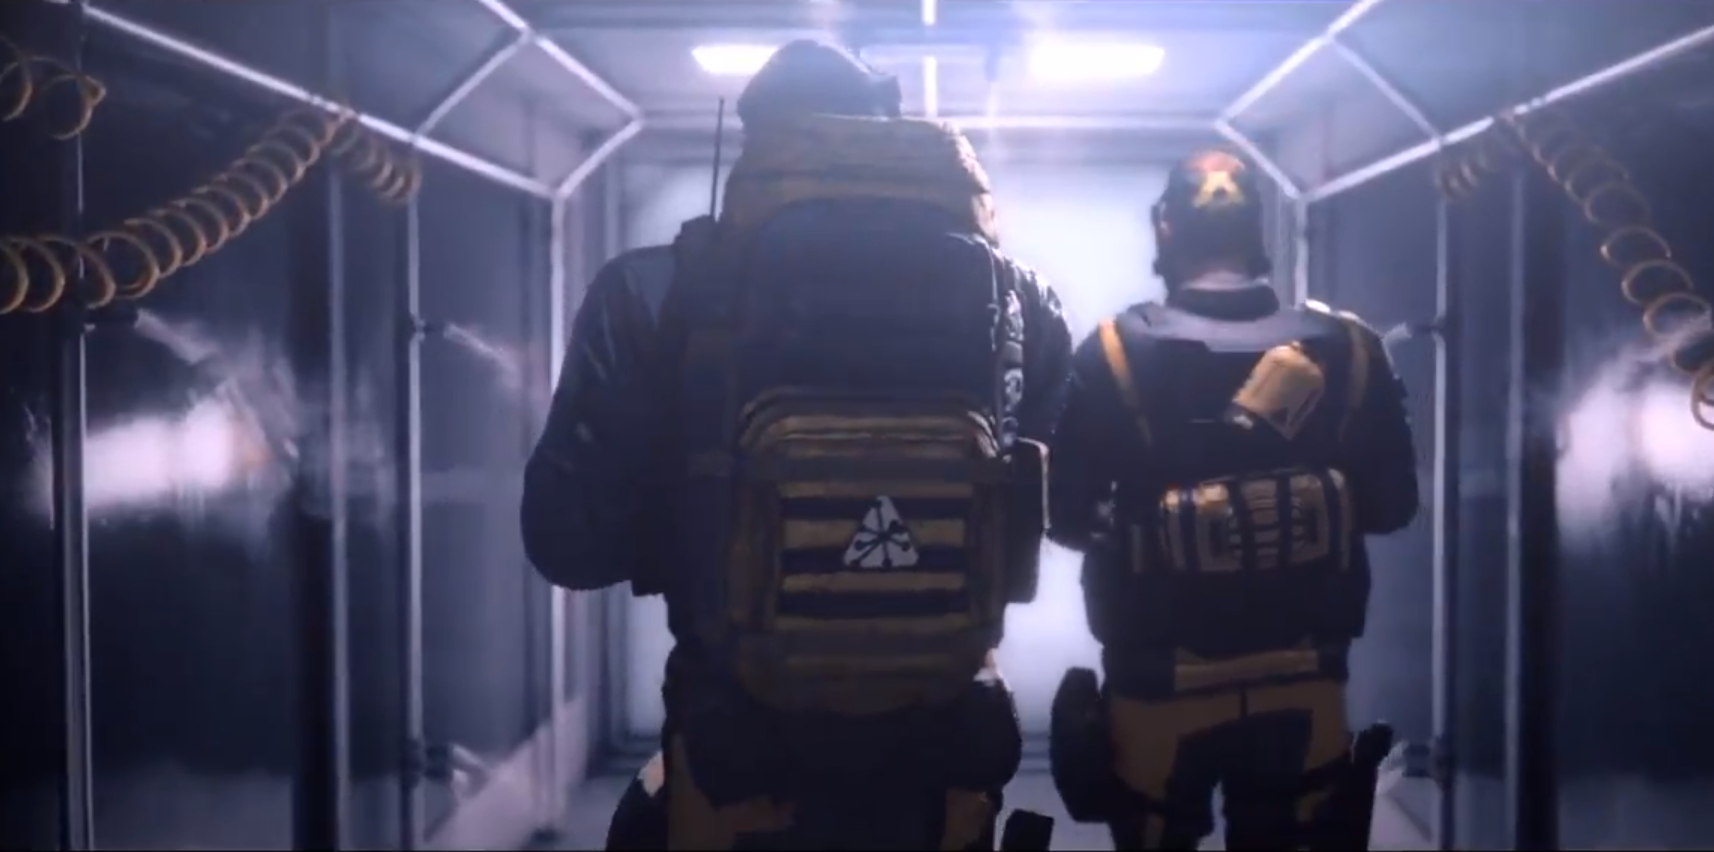 Meet Finka and Lion, the next operators to join Rainbow 6: Siege